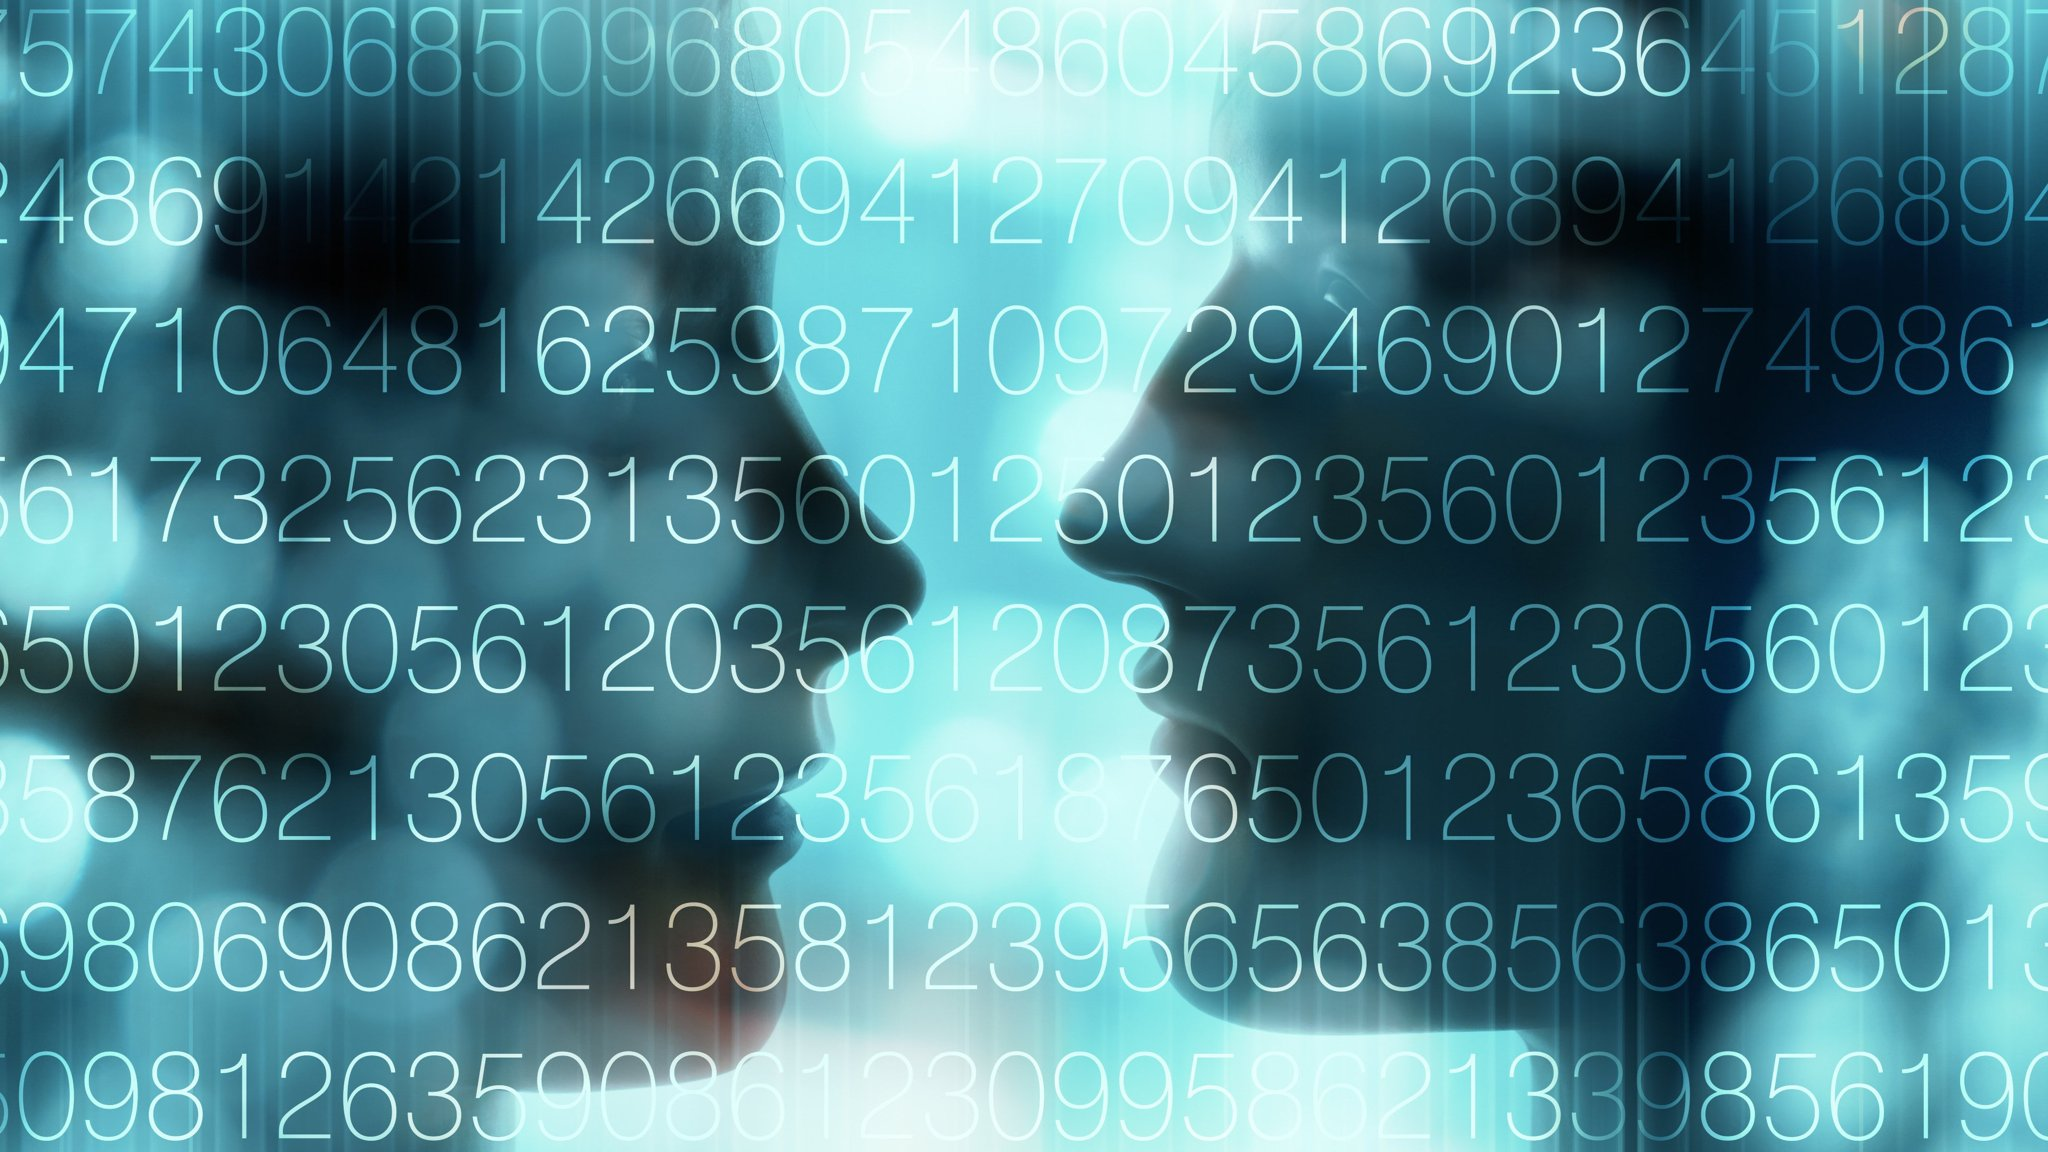 Insurers pay premium for cyber security experts | Financial